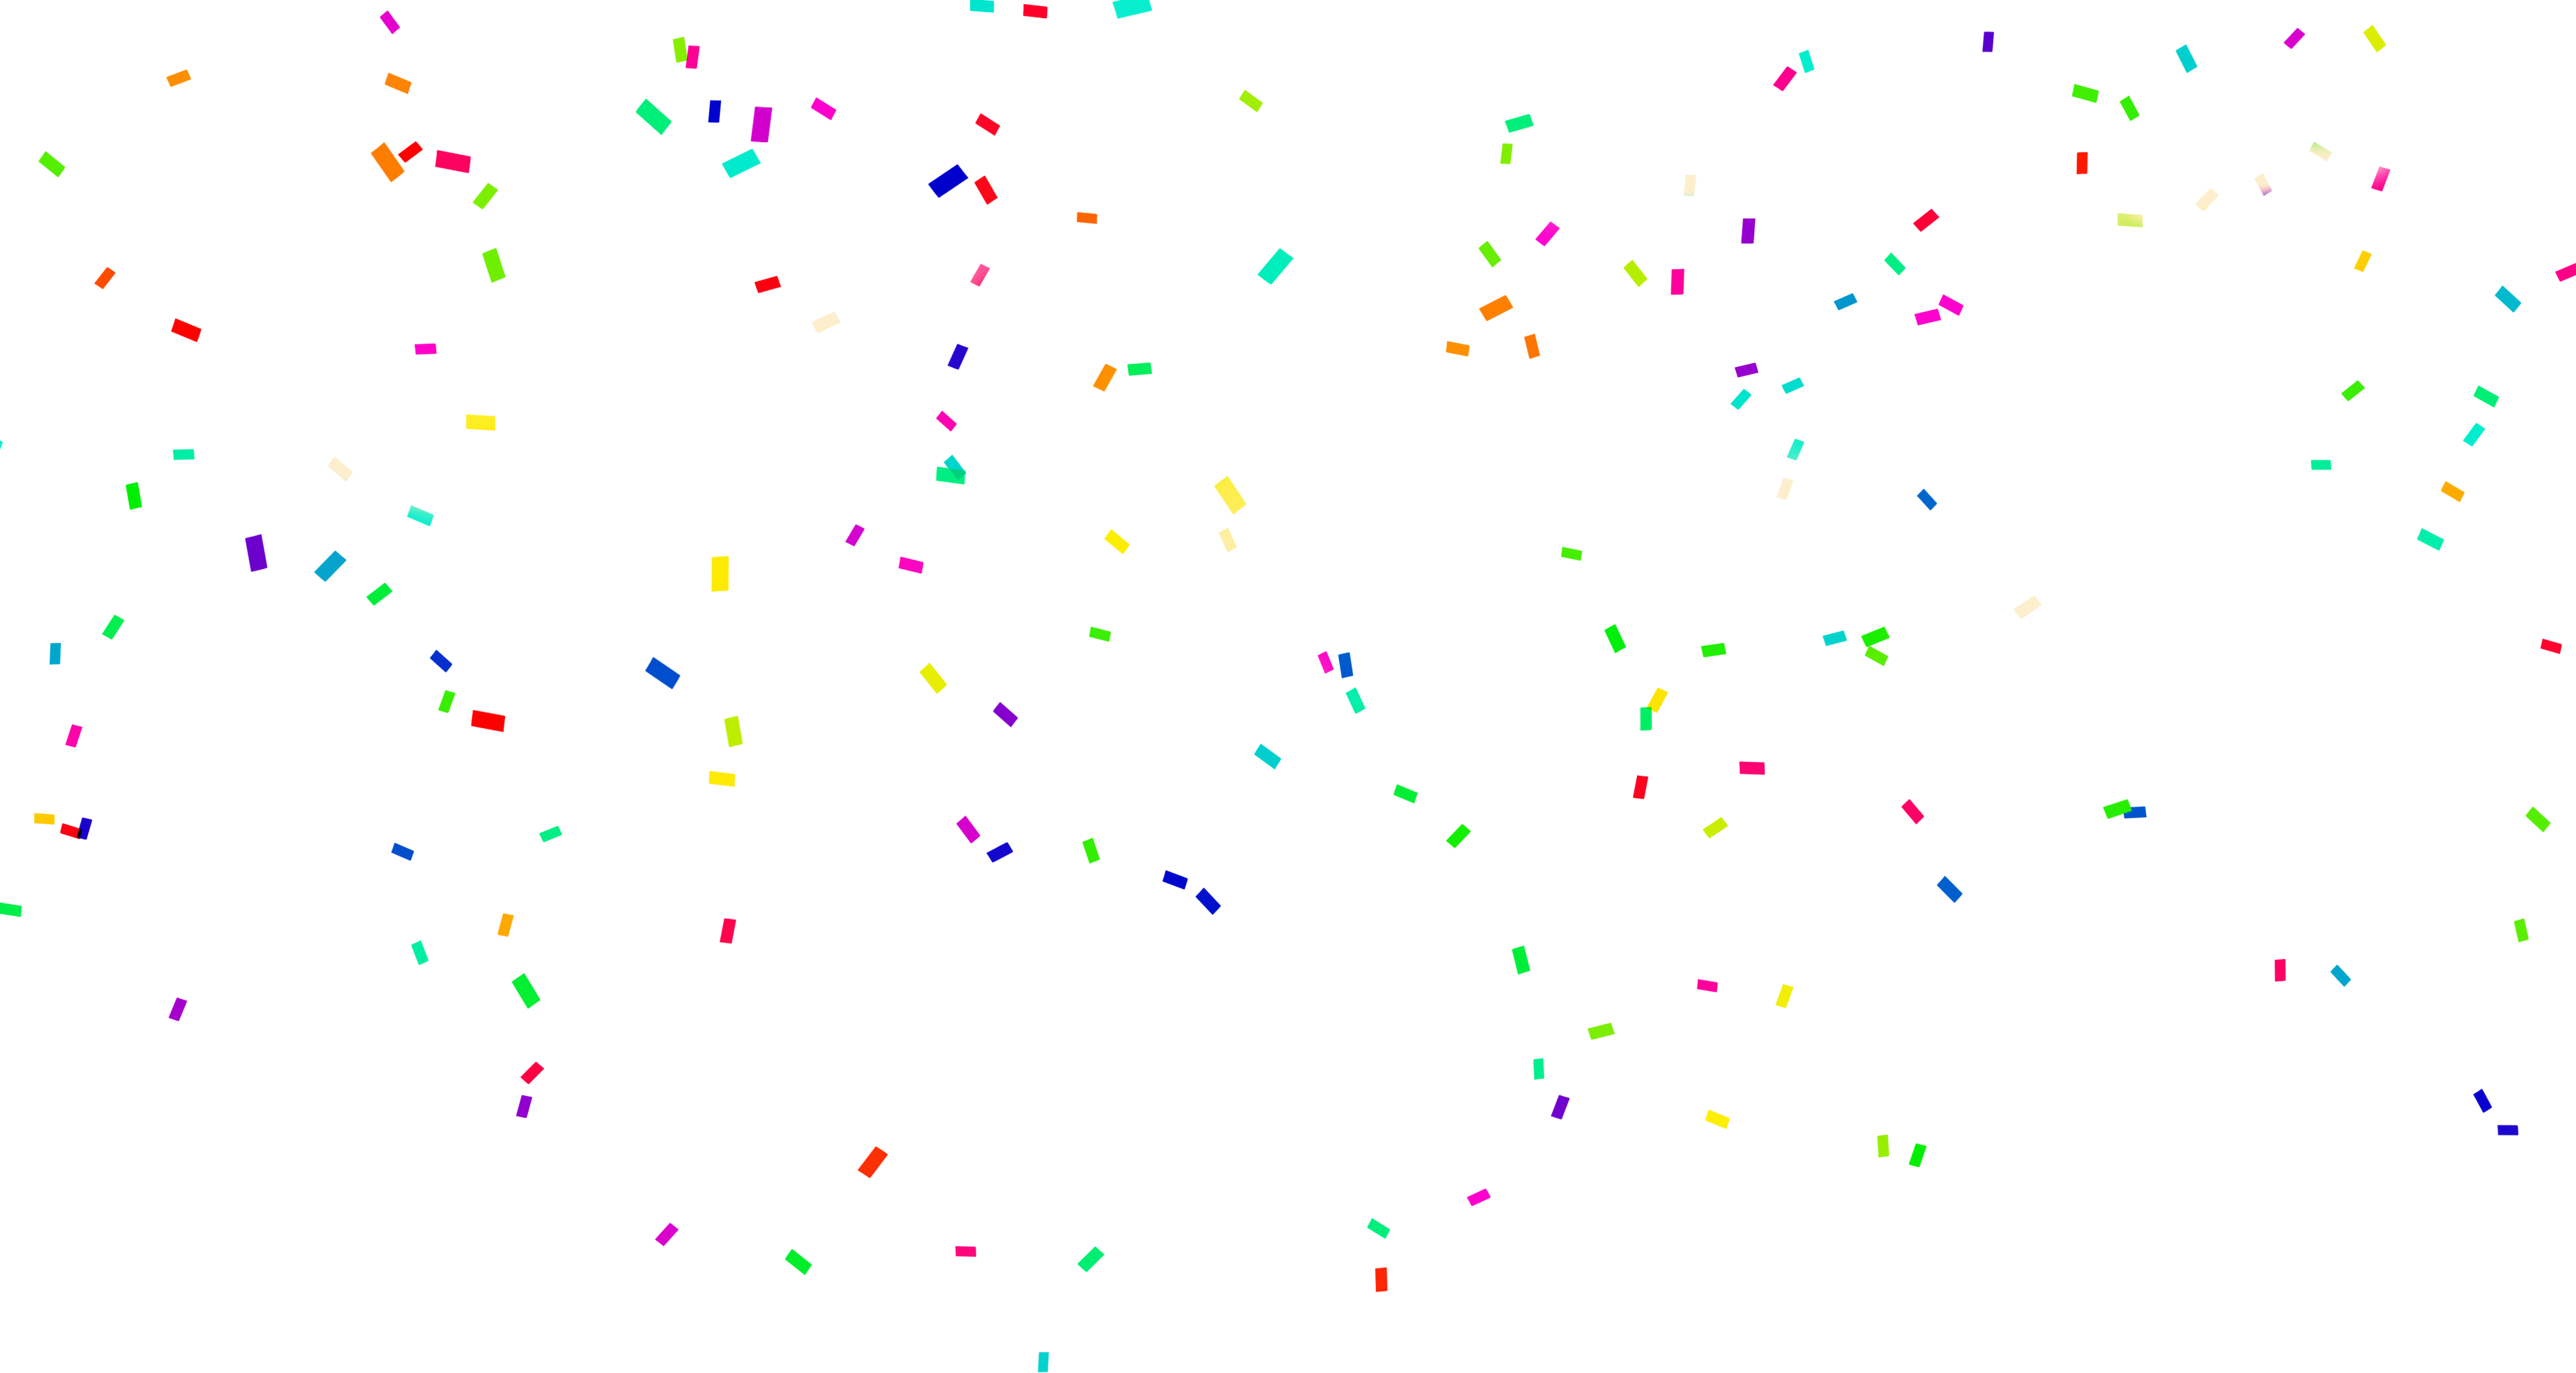 Falling confetti png. Clipart download free icons